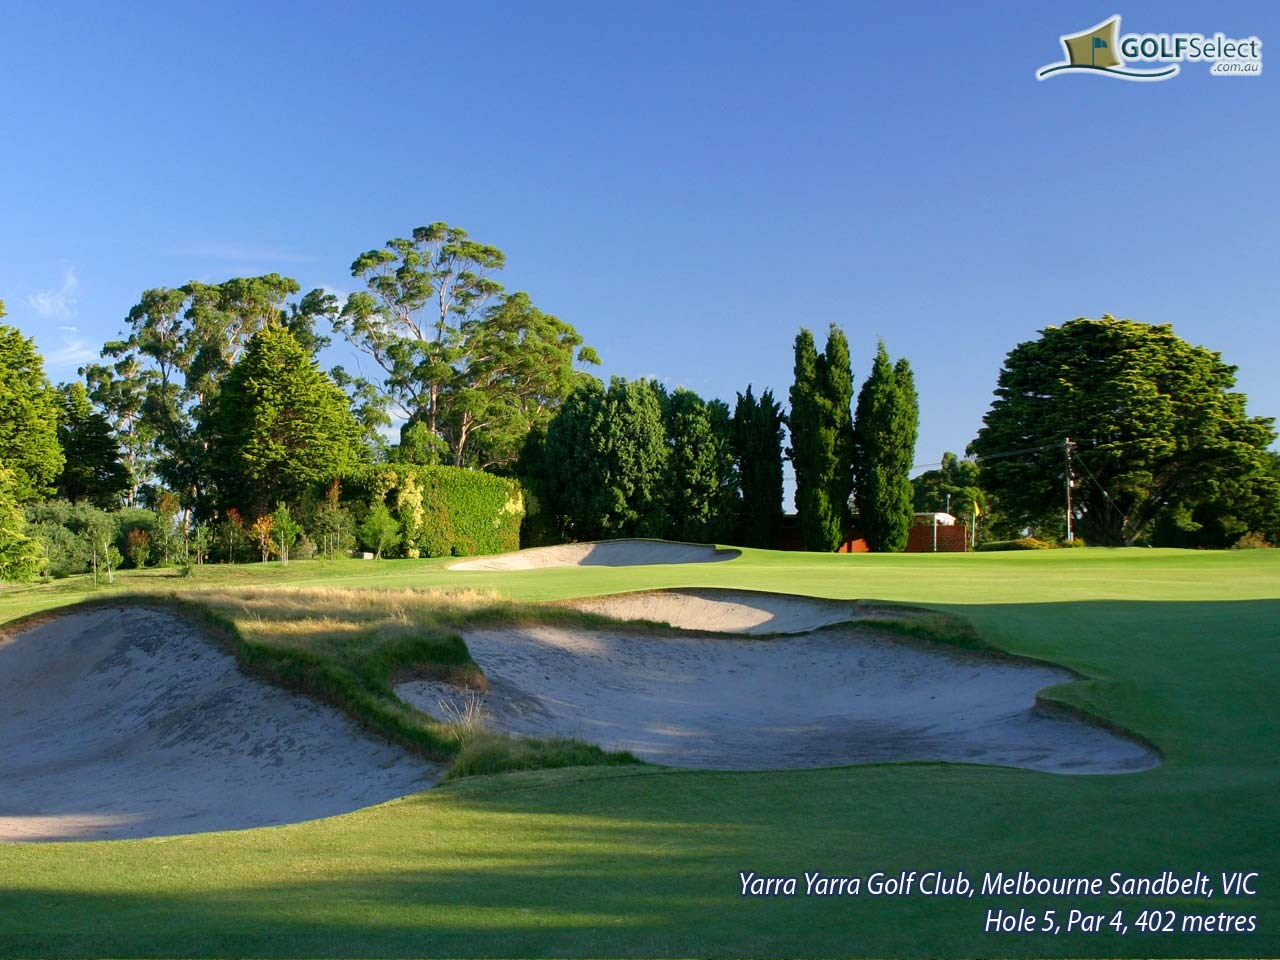 Yarra Yarra Golf Club Hole 5, Par 4, 402 metres